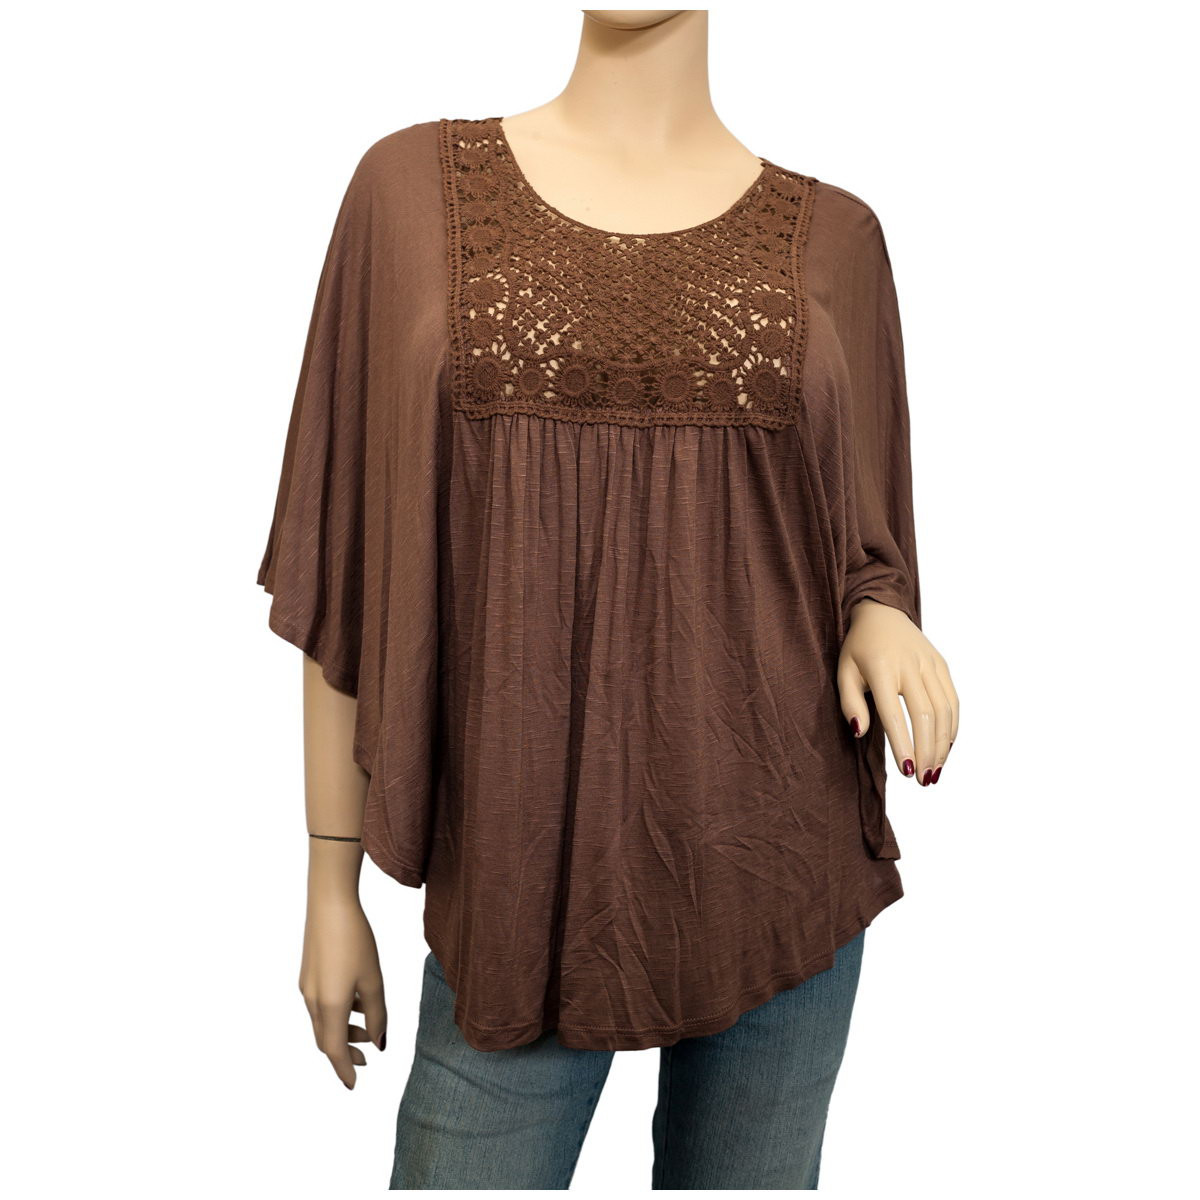 Plus Size Crochet Best Of Plus Size Crochet Poncho top Brown Of Gorgeous 50 Pictures Plus Size Crochet